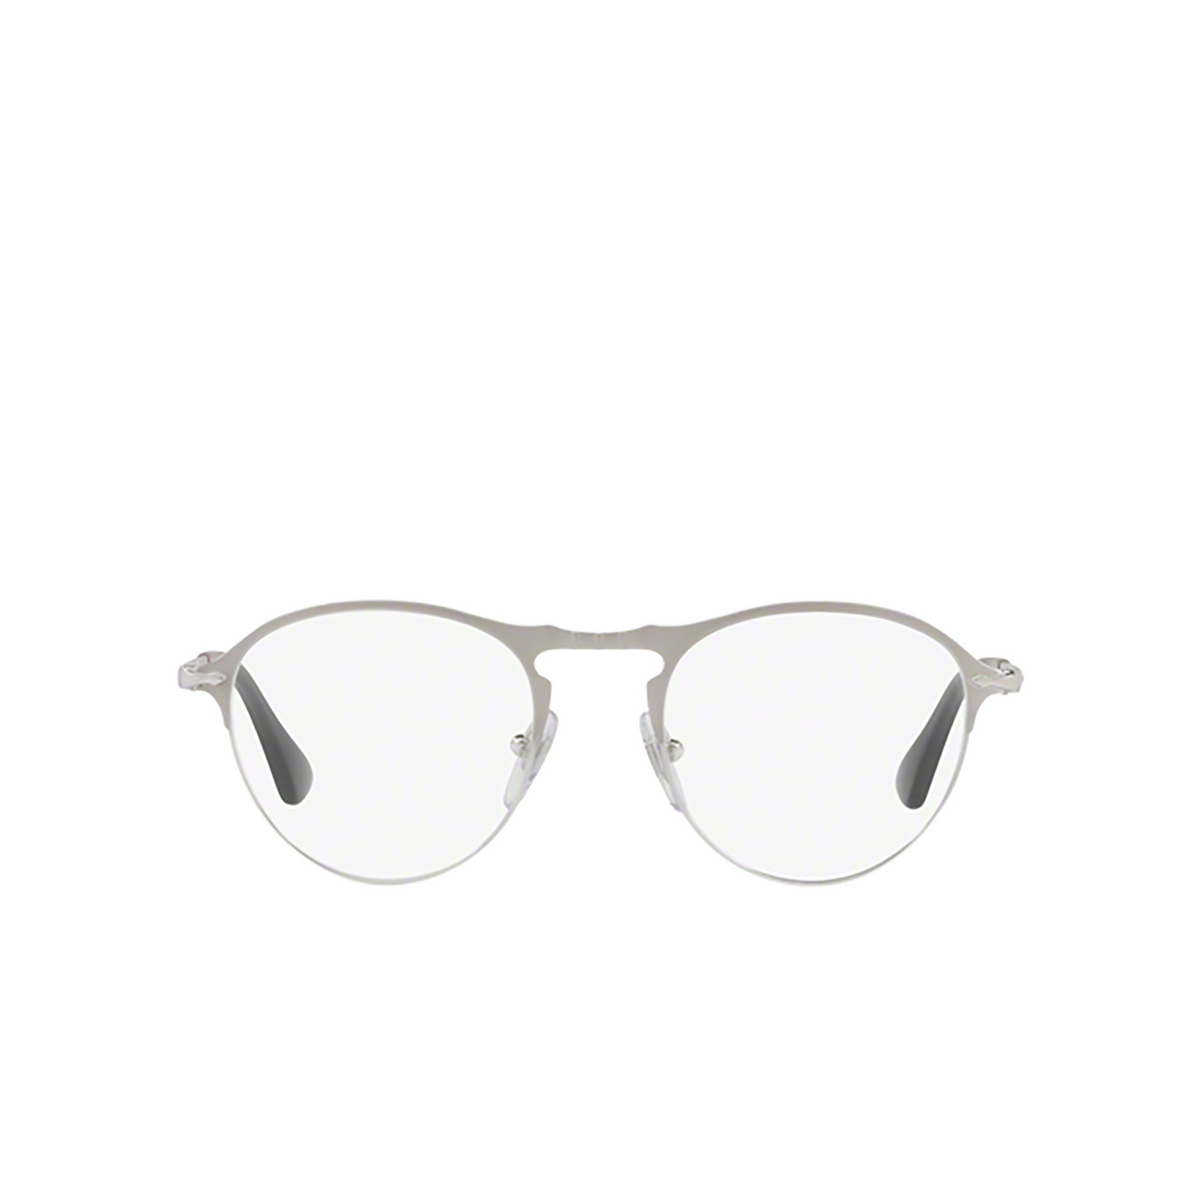 Persol® Round Eyeglasses: PO7092V color Matte Silver / Silver 1068 - front view.